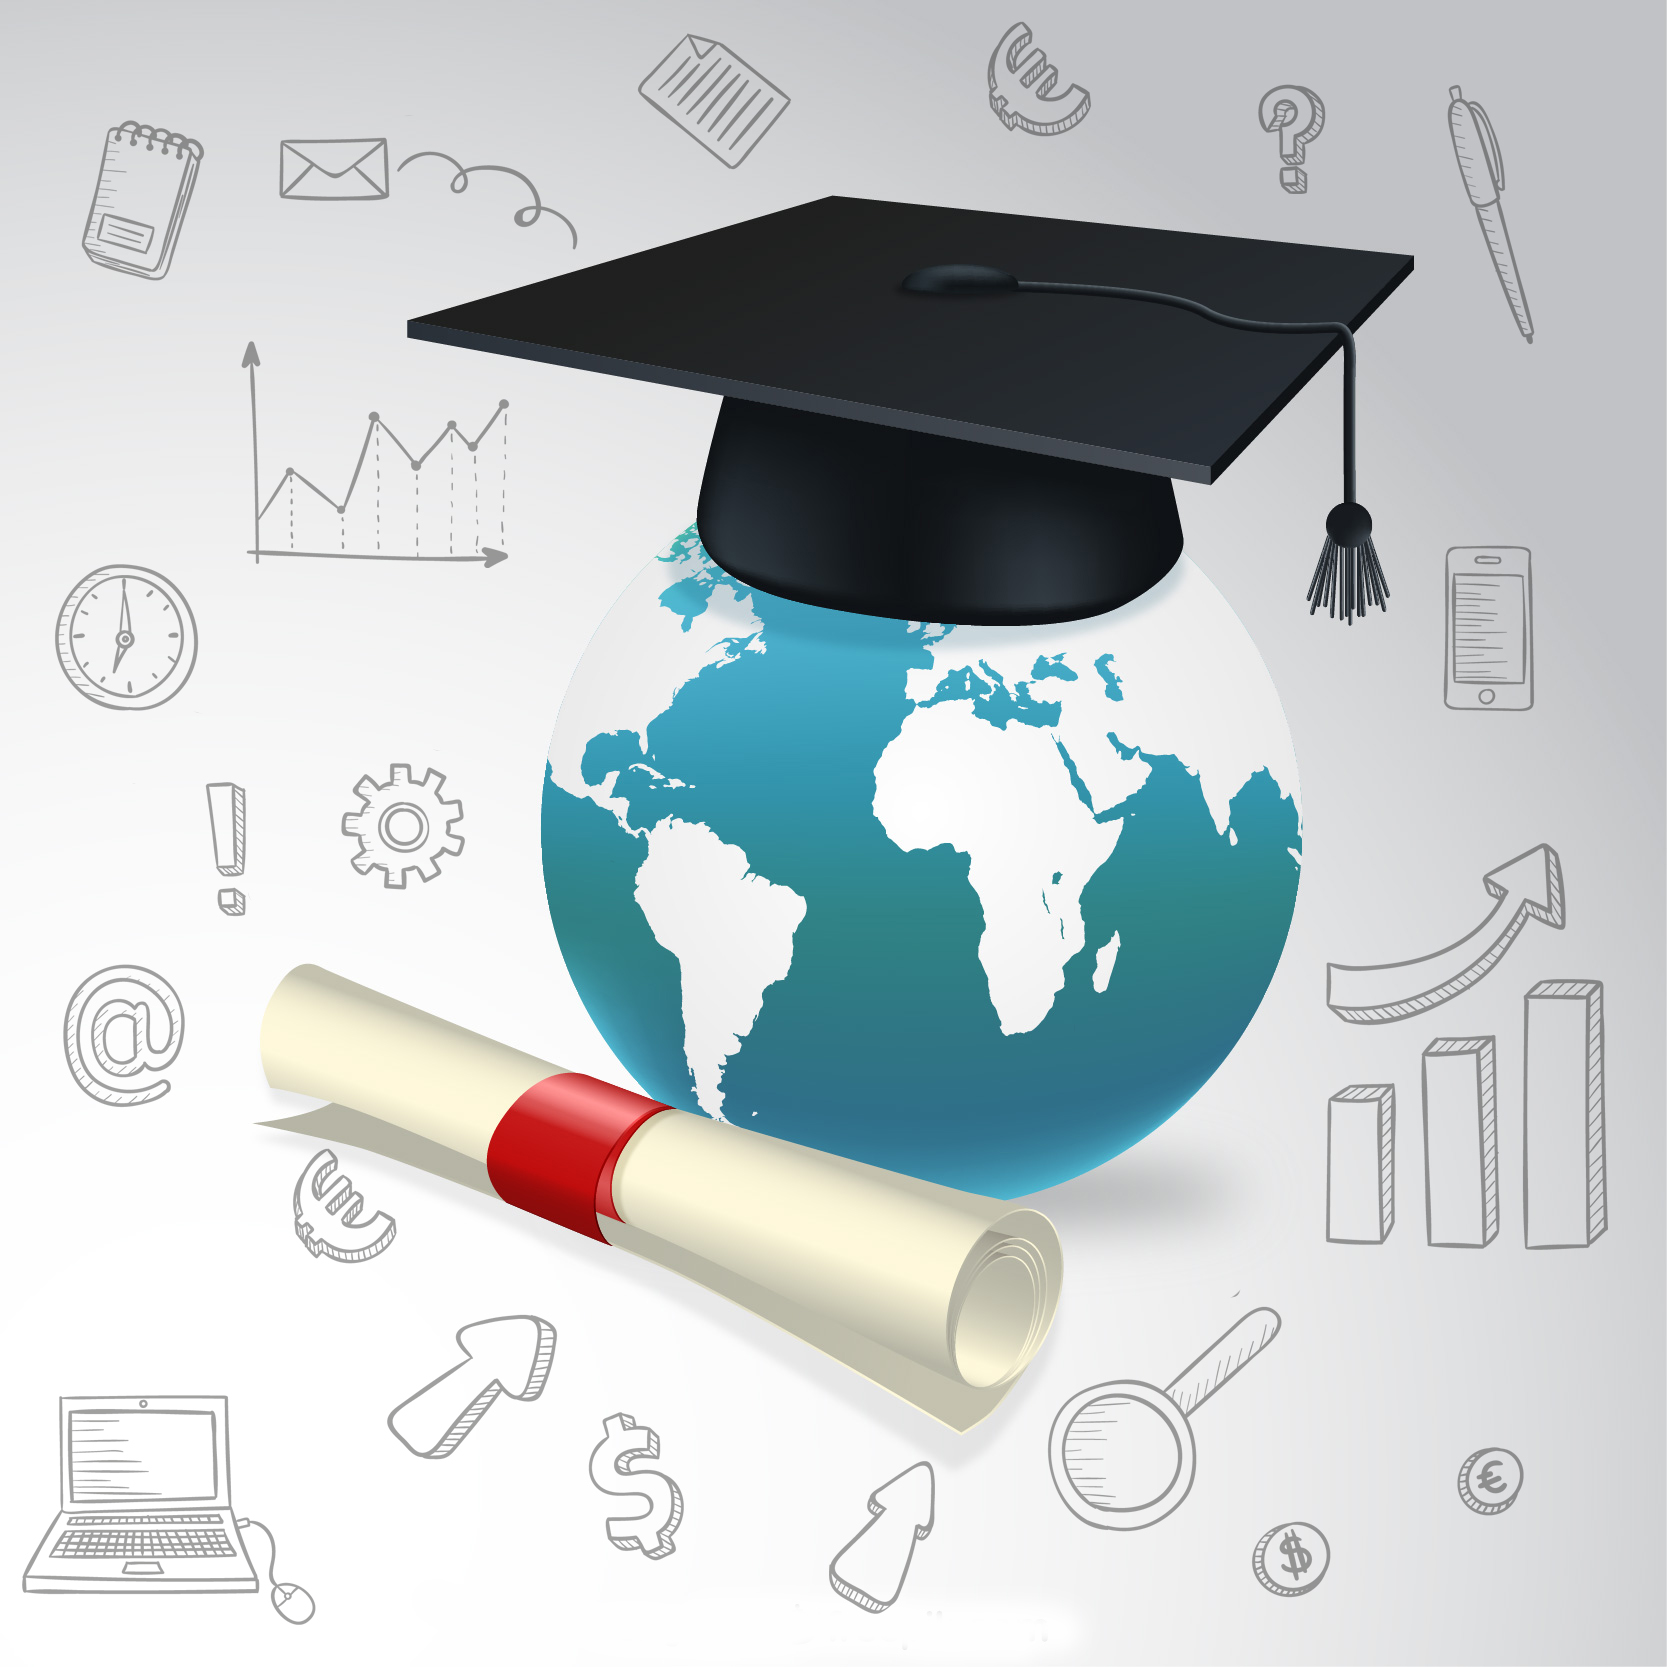 Education on forex trading